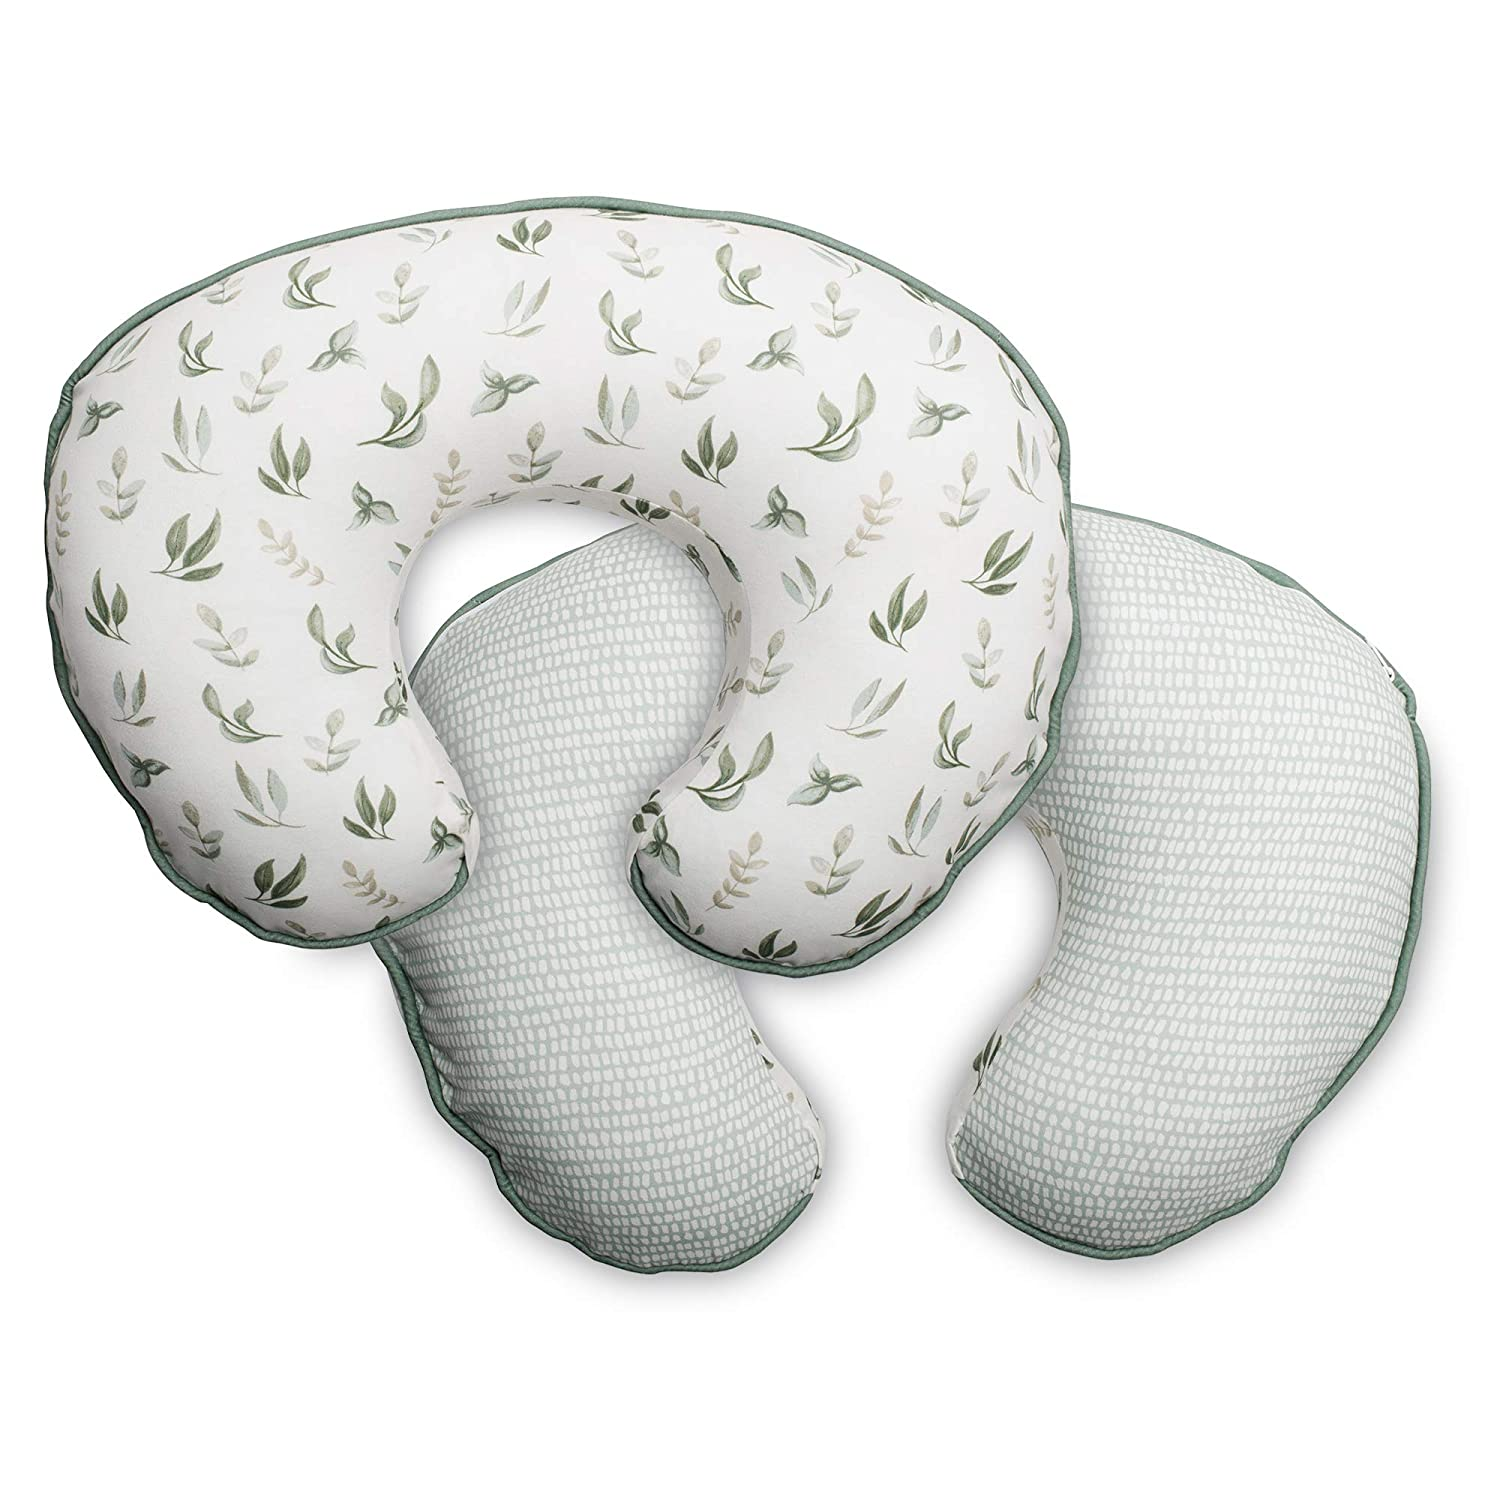 Boppy Organic Fabric Pillow Cover, Green Little Leaves, Fashionable Two-Sided Design, Fits All Nursing Pillows & Positioners